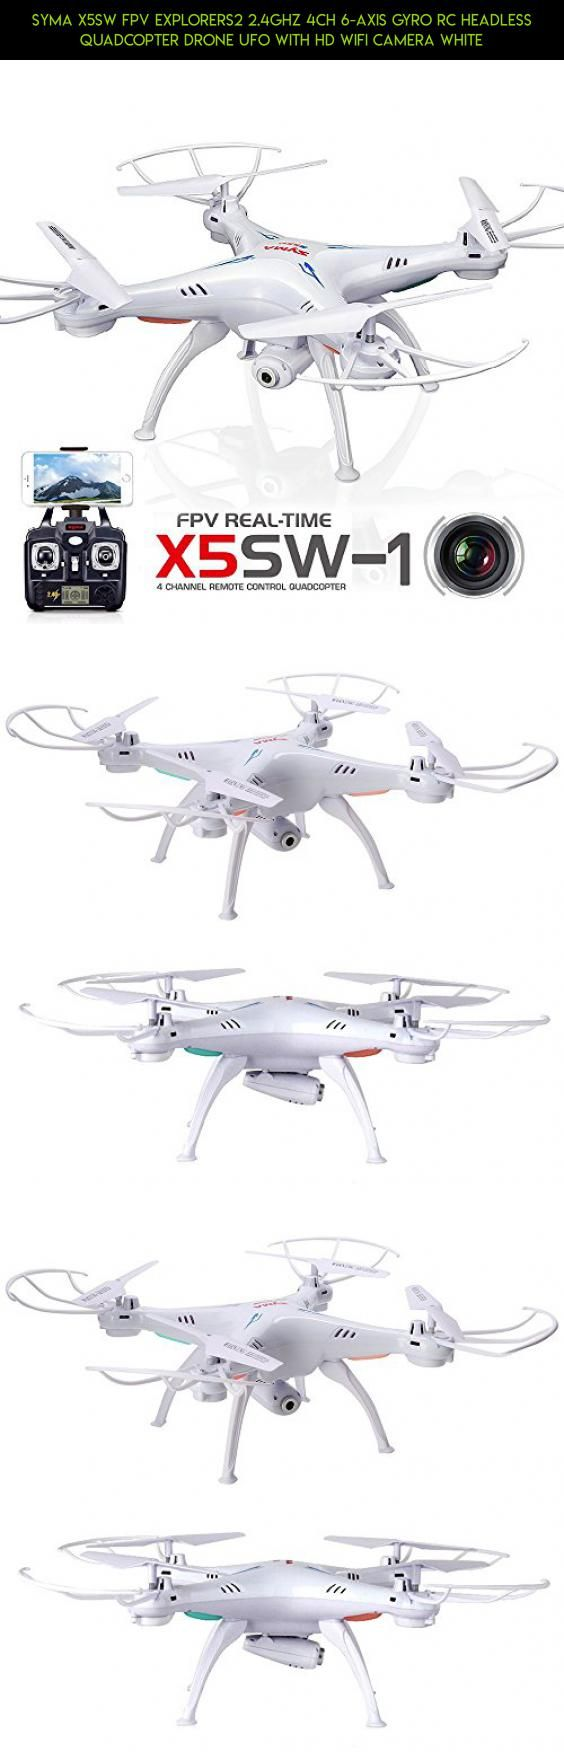 Syma X5SW FPV Explorers2 2.4Ghz 4CH 6-Axis Gyro RC Headless Quadcopter Drone UFO with HD Wifi Camera White #control #parts #wi-fi #gadgets #with #quadcopter #kit #syma #racing #remote #2.4g #camera #technology #plans #drone #products #fpv #tech #x5sw #camera #shopping